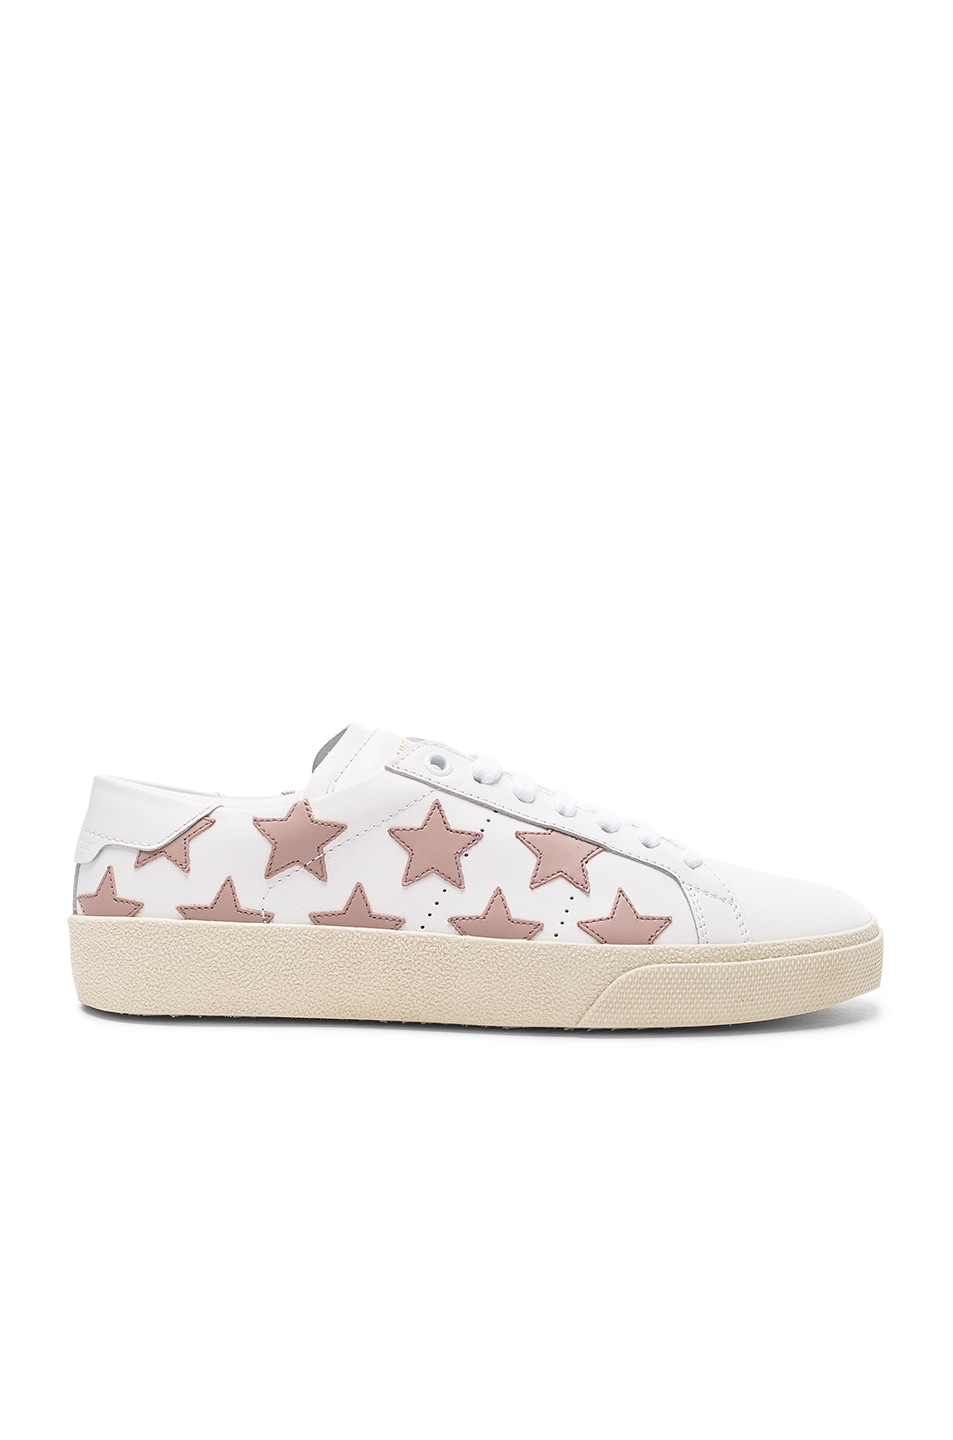 1f3b90522e9 Image 1 of Saint Laurent Leather Court Classic Star Sneakers in Off White &  Rose Antic